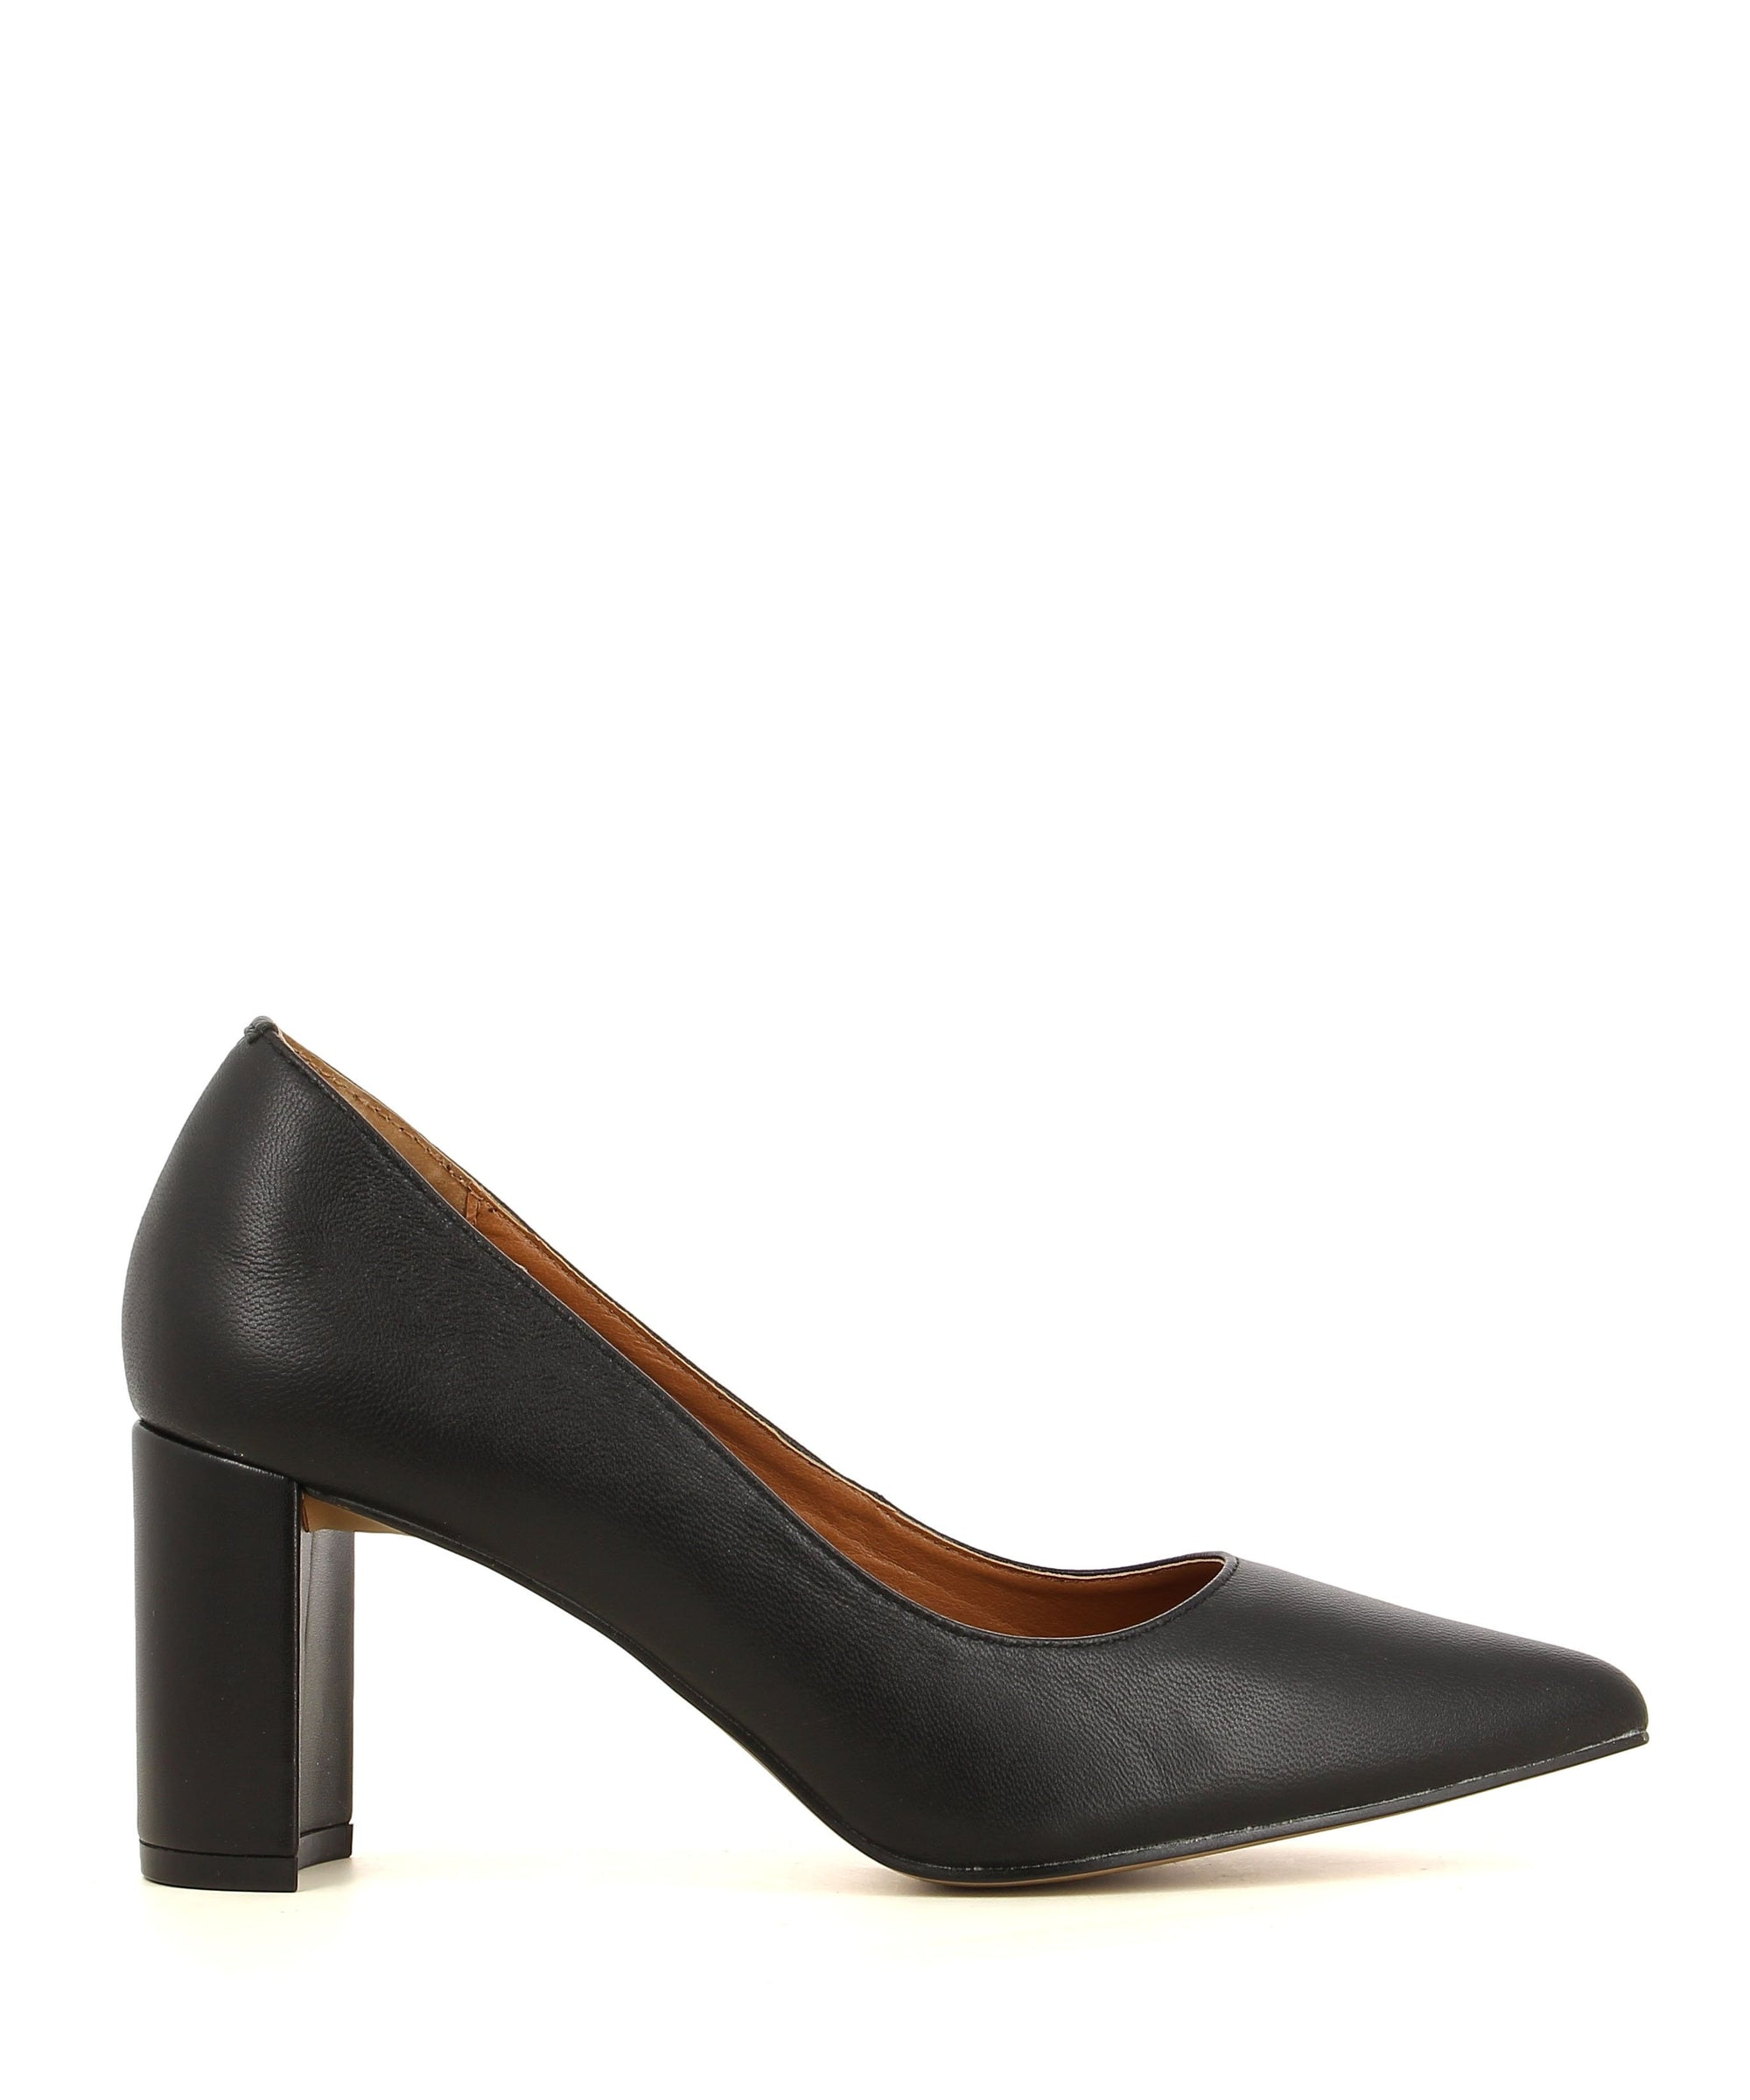 A black leather pointed toe pump by Diavolina. The 'Envy' features a block heel and a pointed toe.